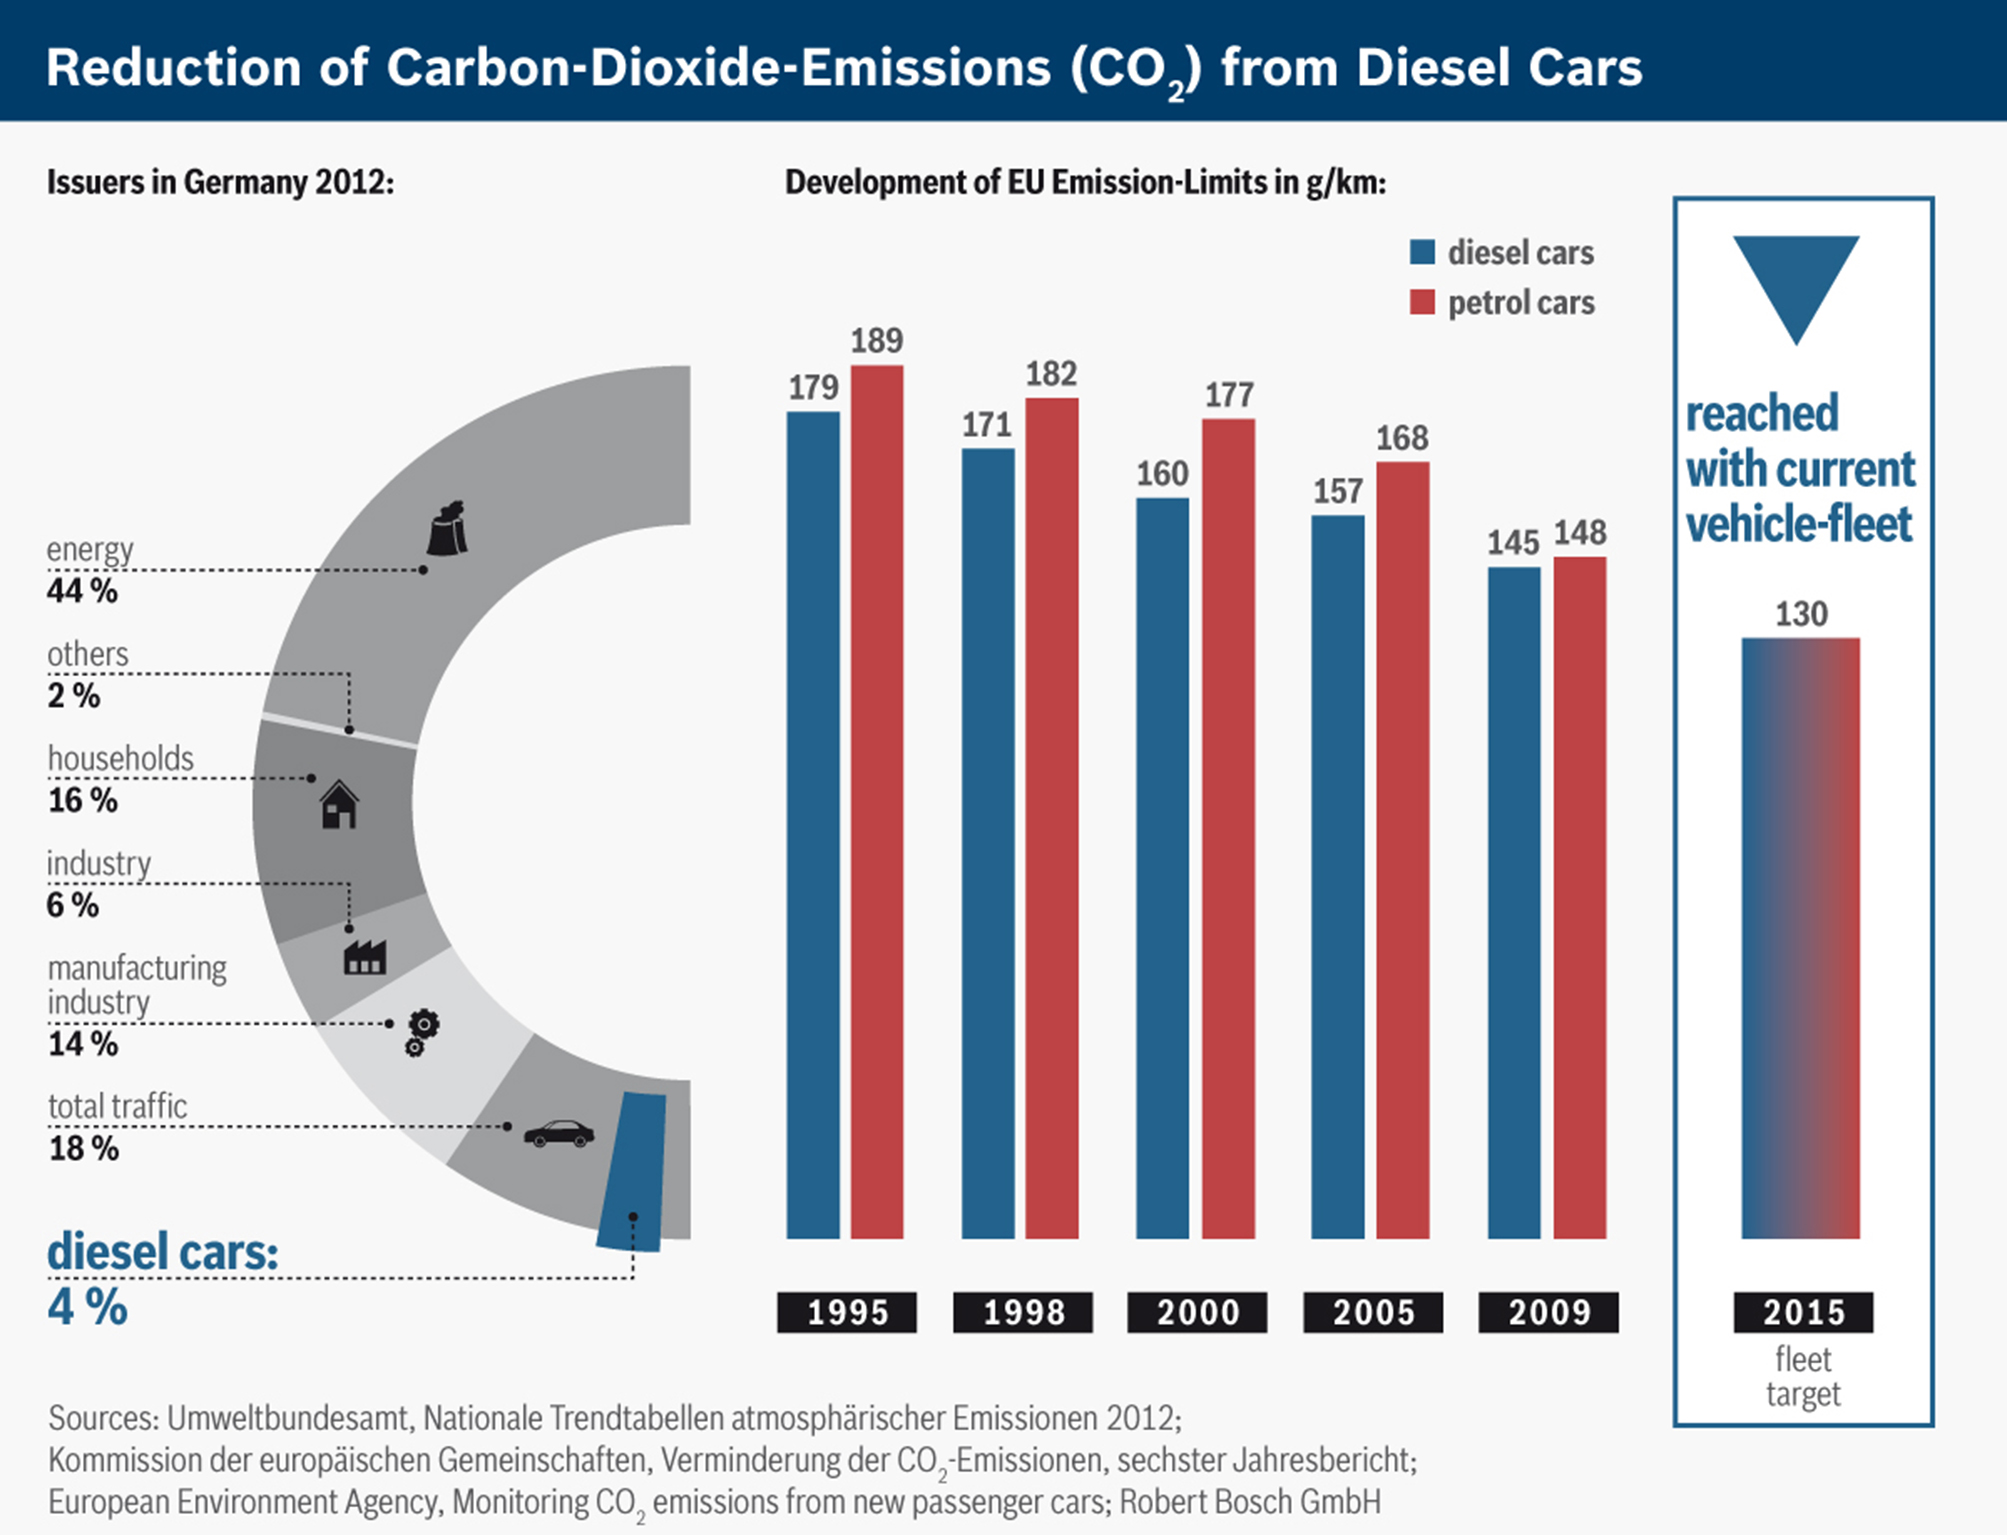 Reduction of CO2 for diesel cars